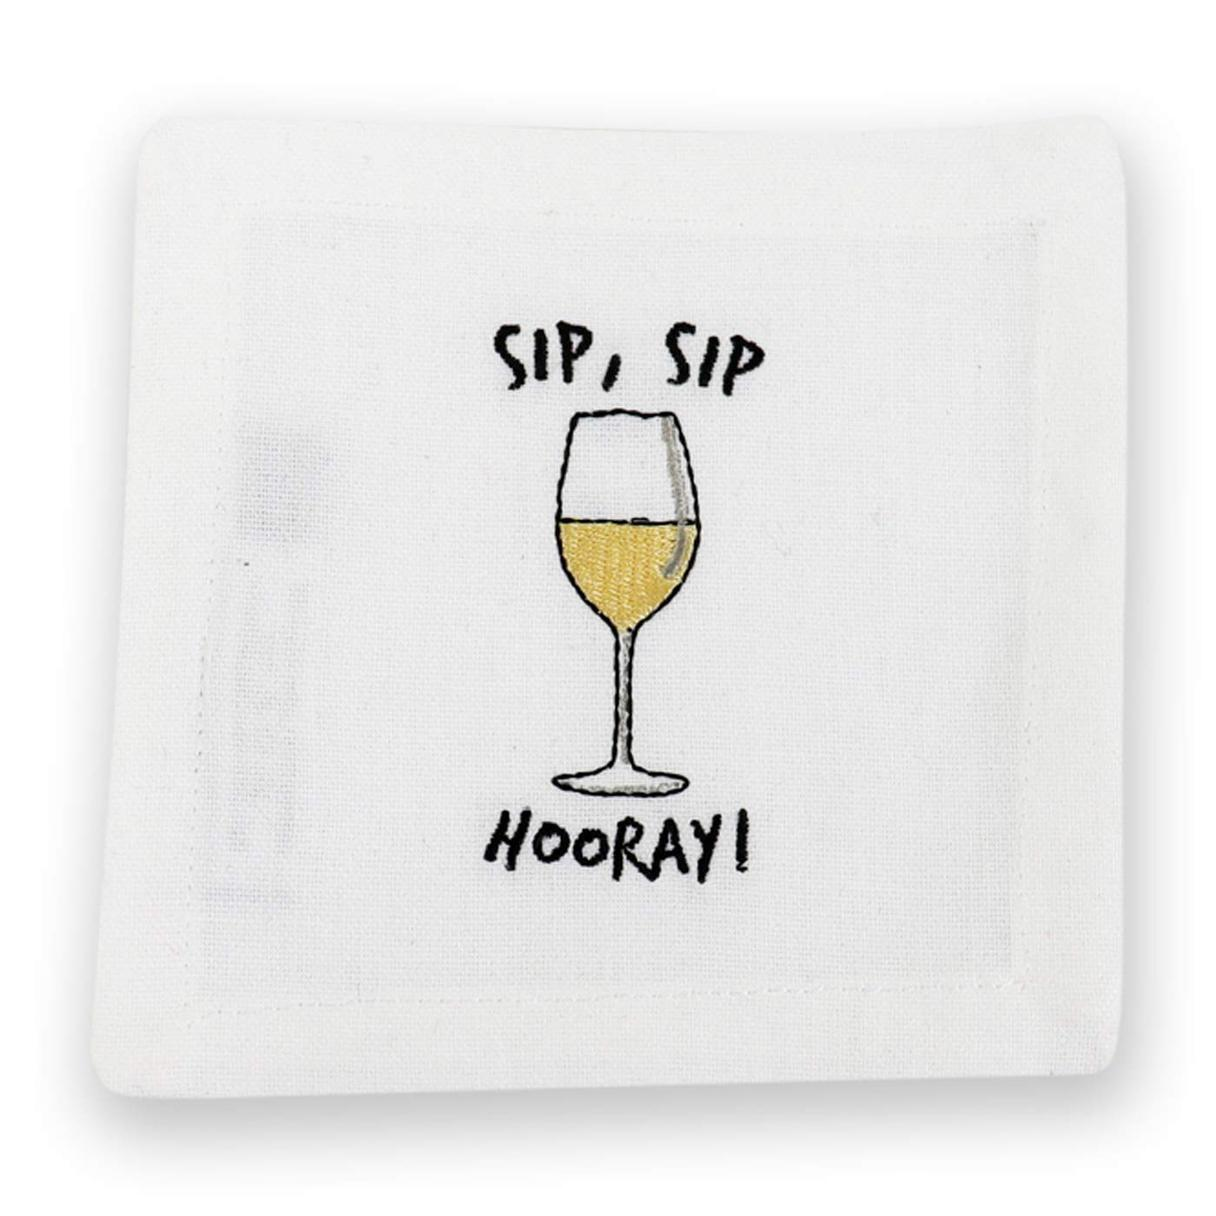 Sip Sip Hooray Cocktail Napkins, Set of 4